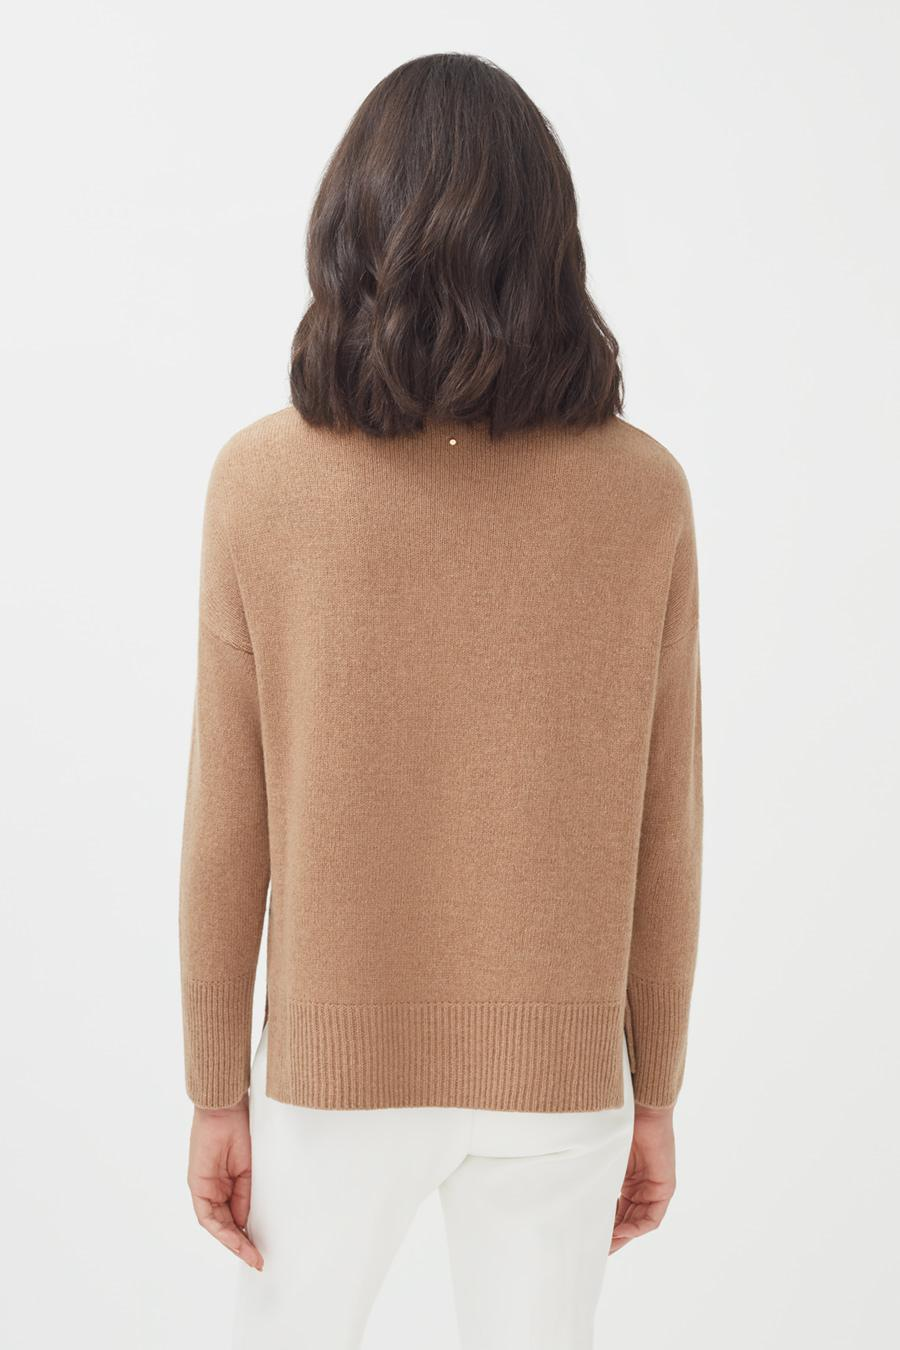 Women's Recycled Crewneck Sweater in Camel | Size: 2